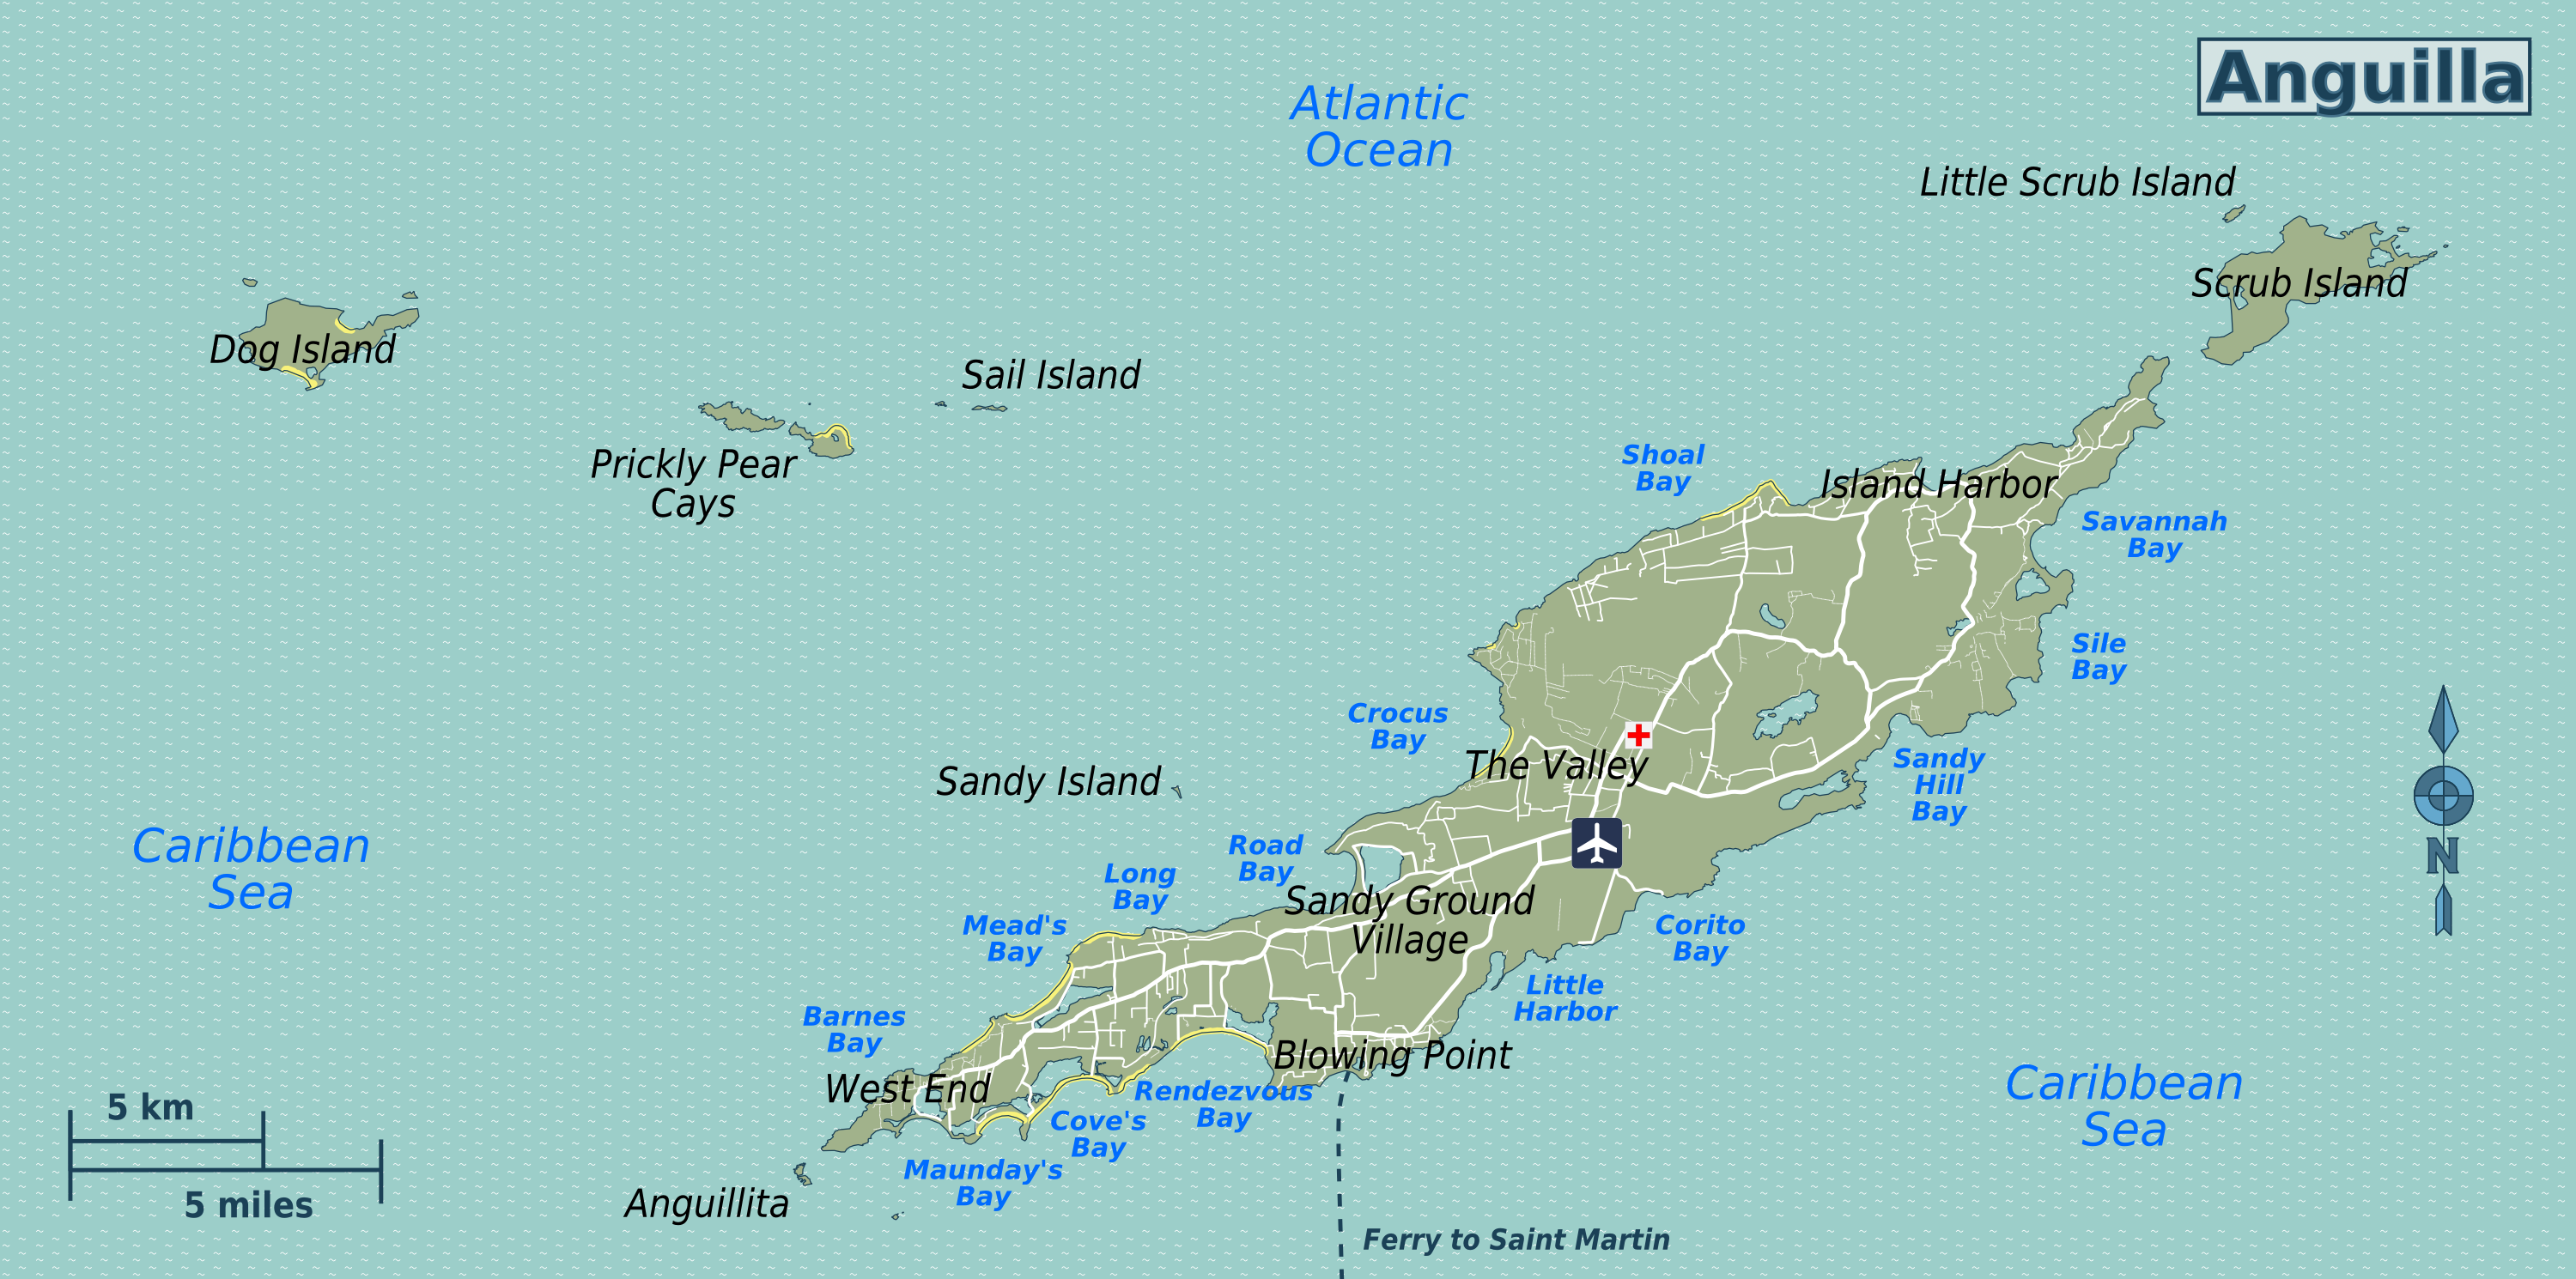 FileAnguilla regions mappng Wikimedia Commons